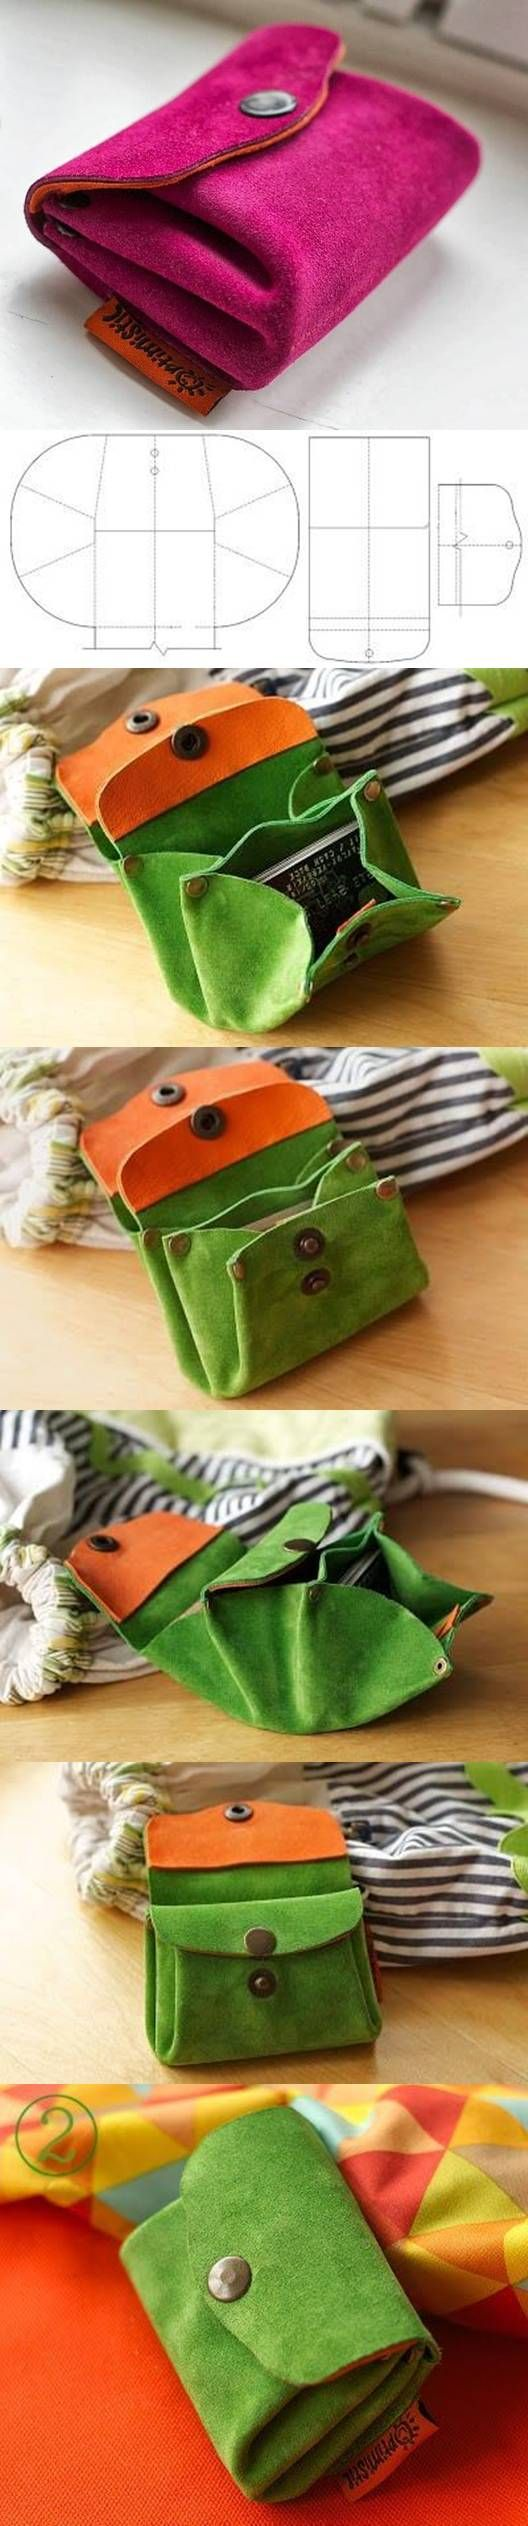 DIY-Plump-Purse.jpg 528×2'526 Pixel